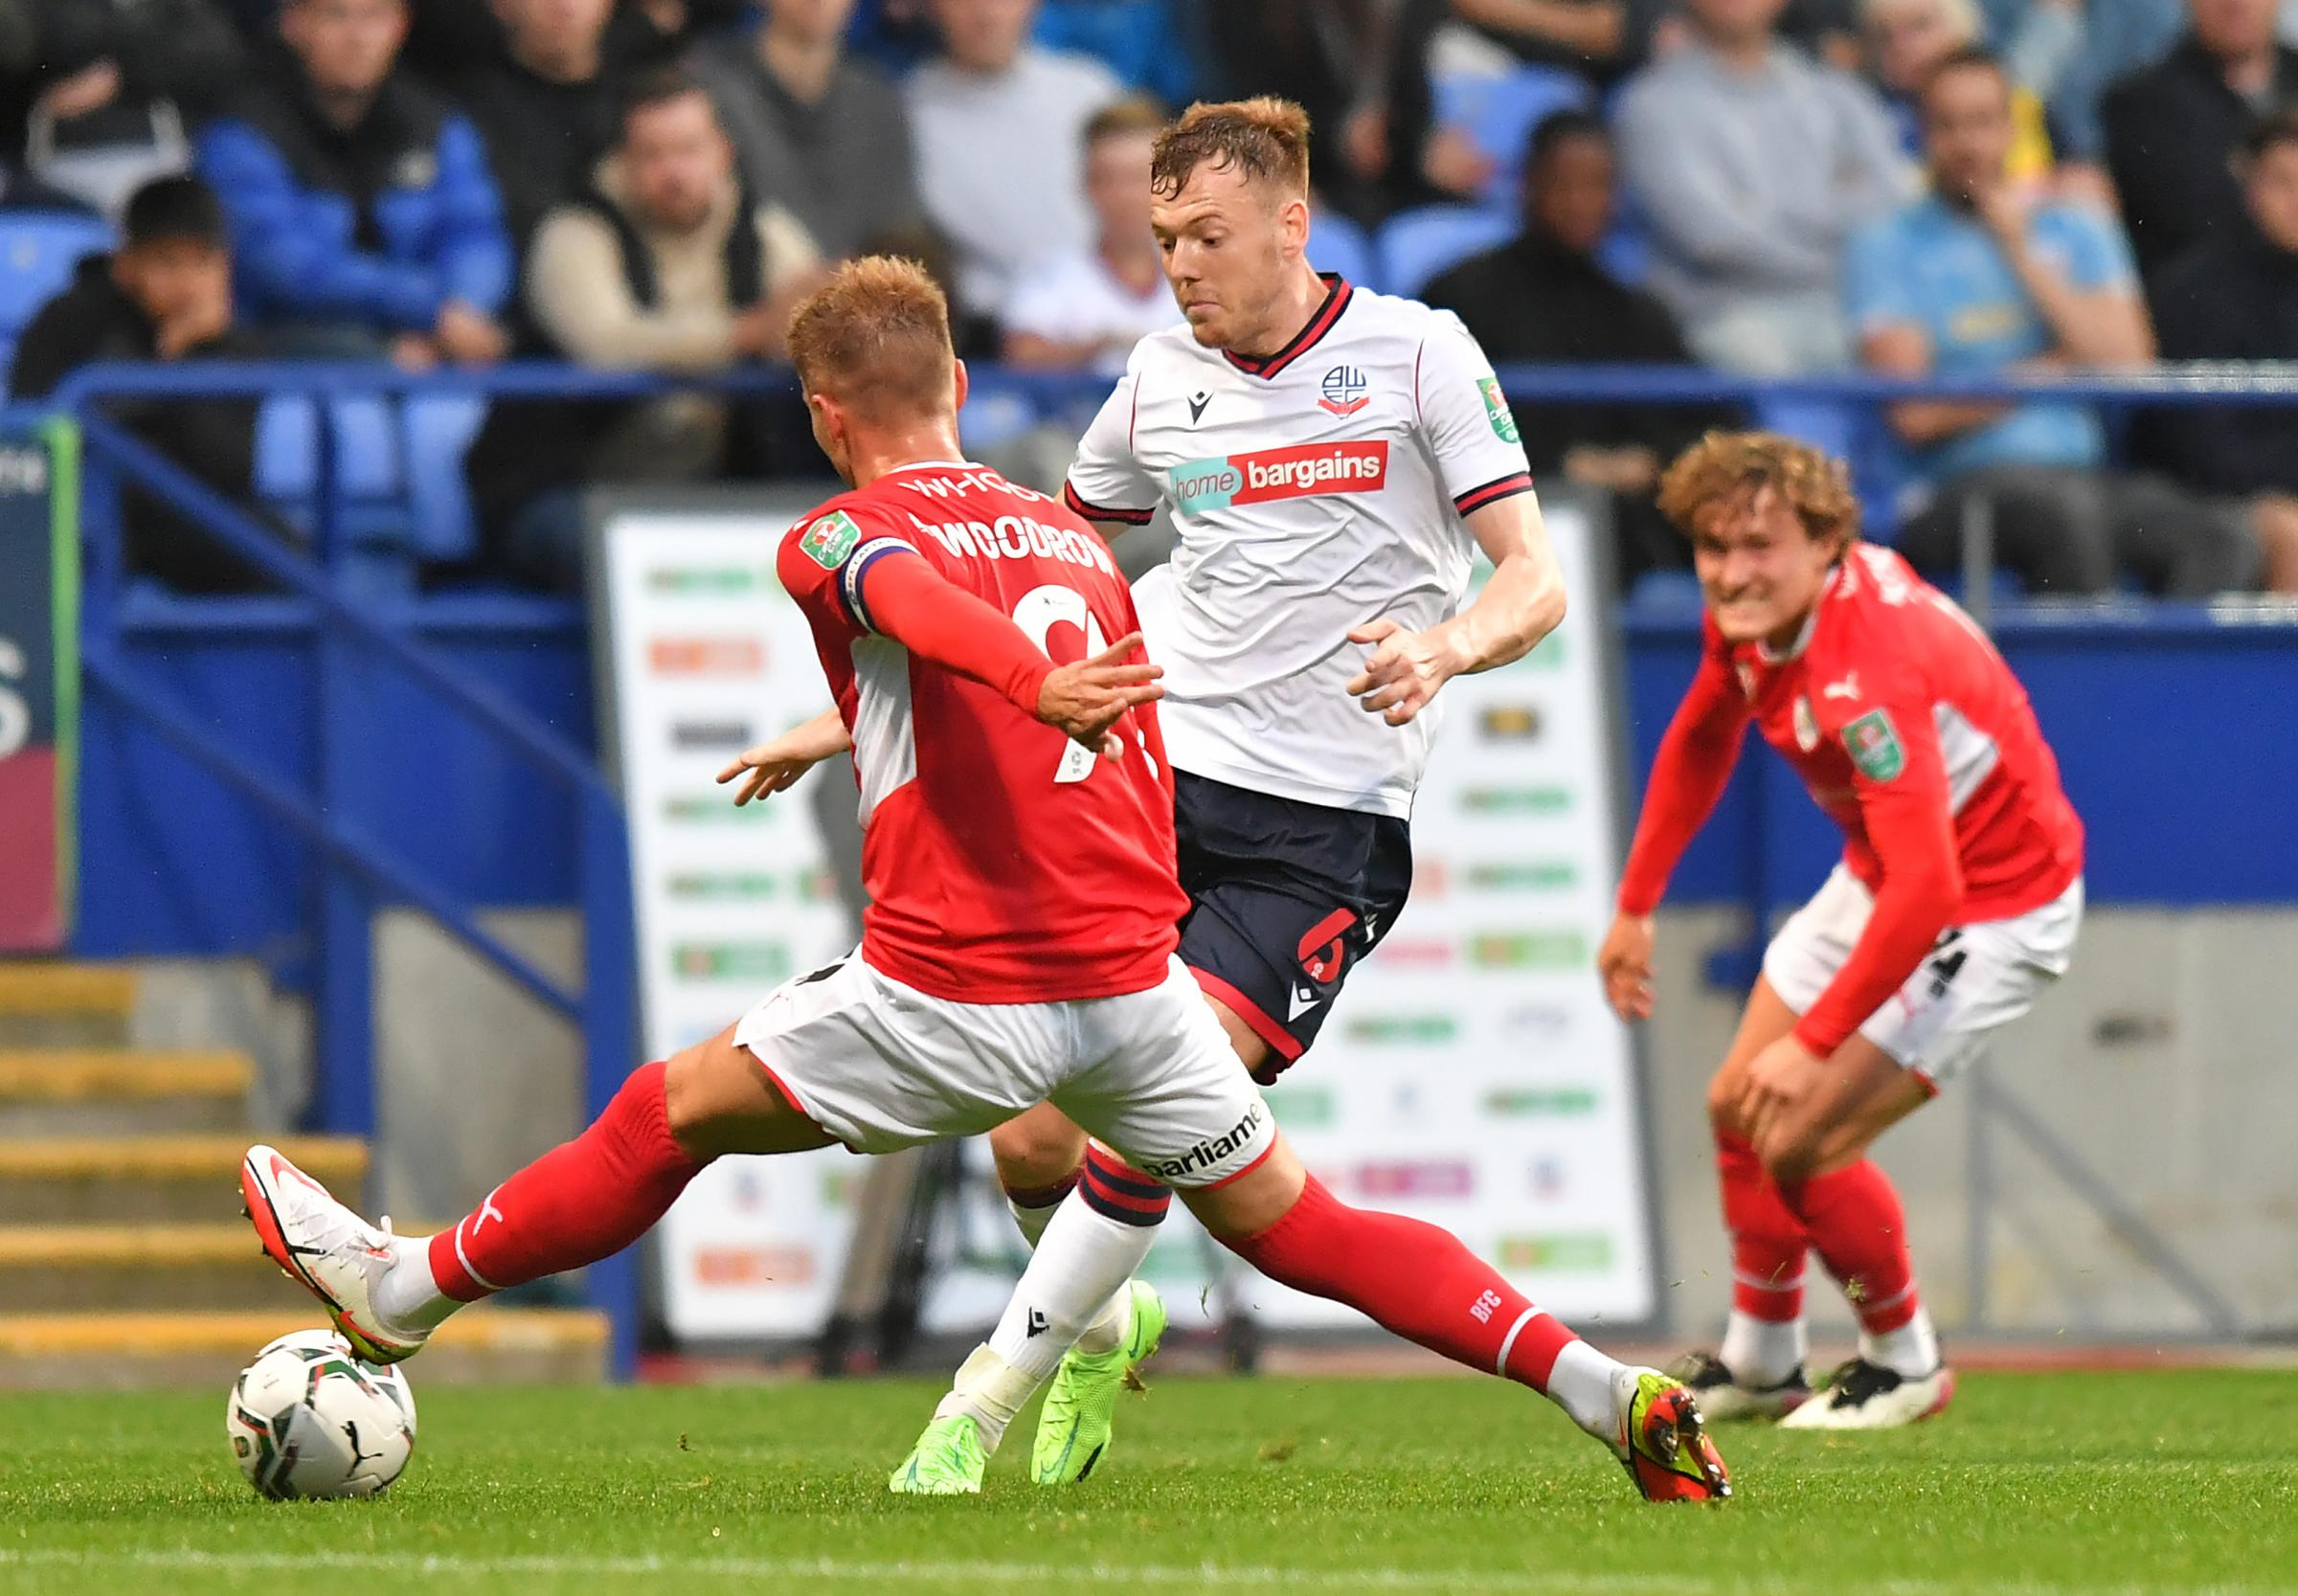 Bolton Wanderers' Carabao Cup win over Barnsley in pictures